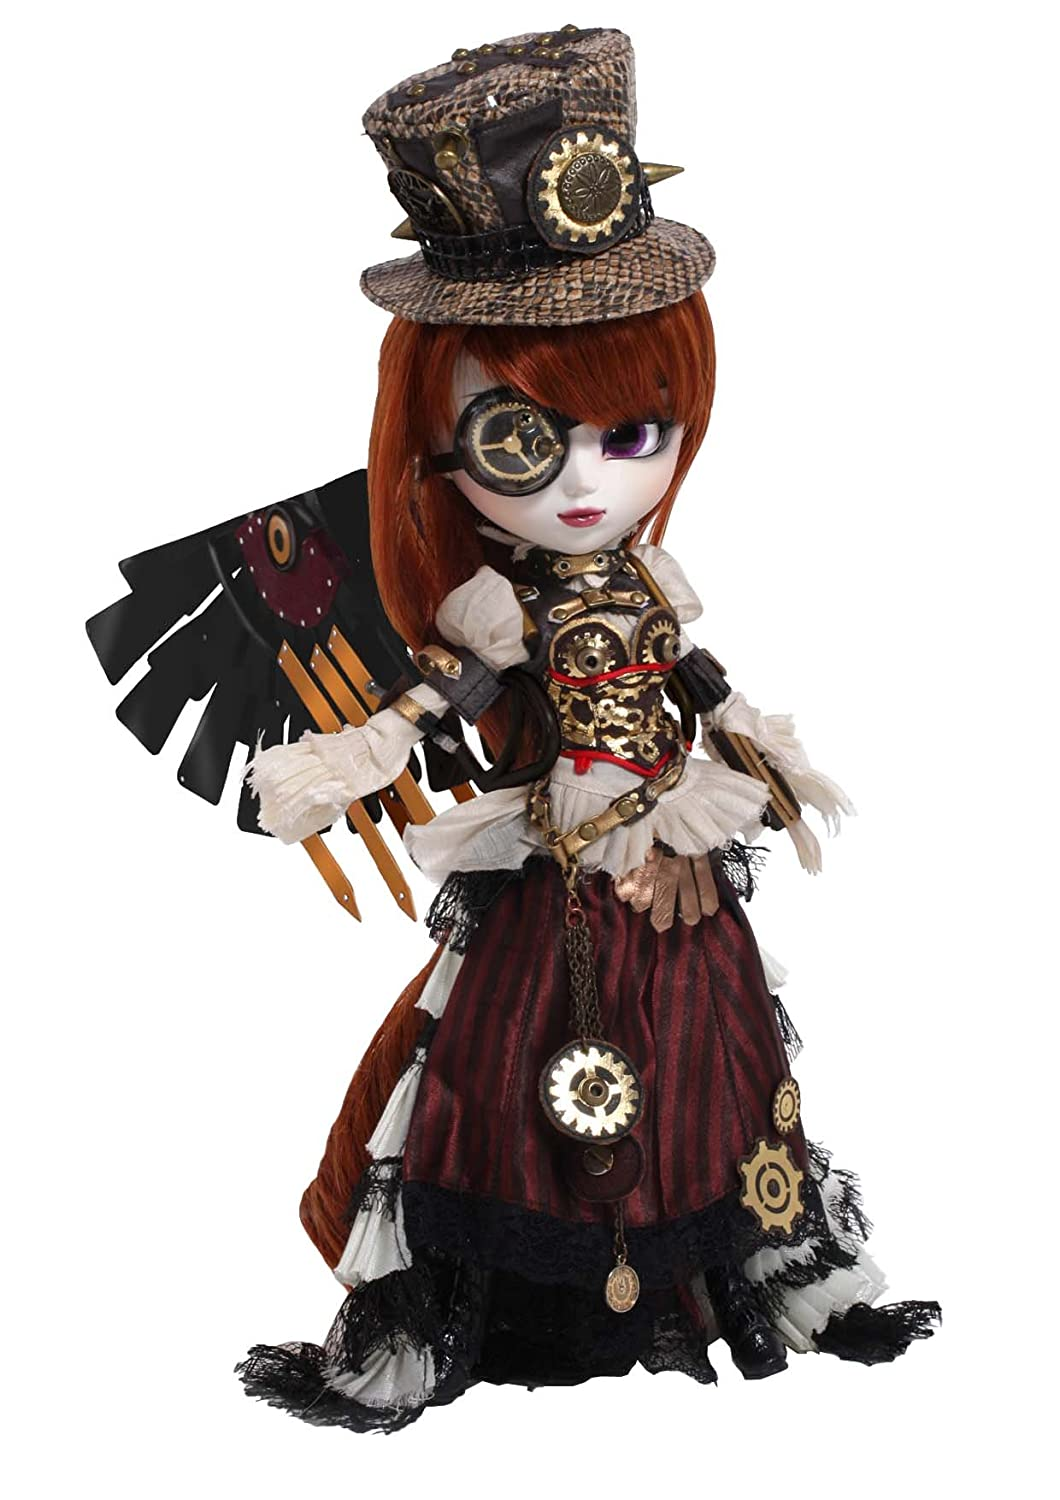 Pullip Dolls Pullip Dolls Steampunk 2nd